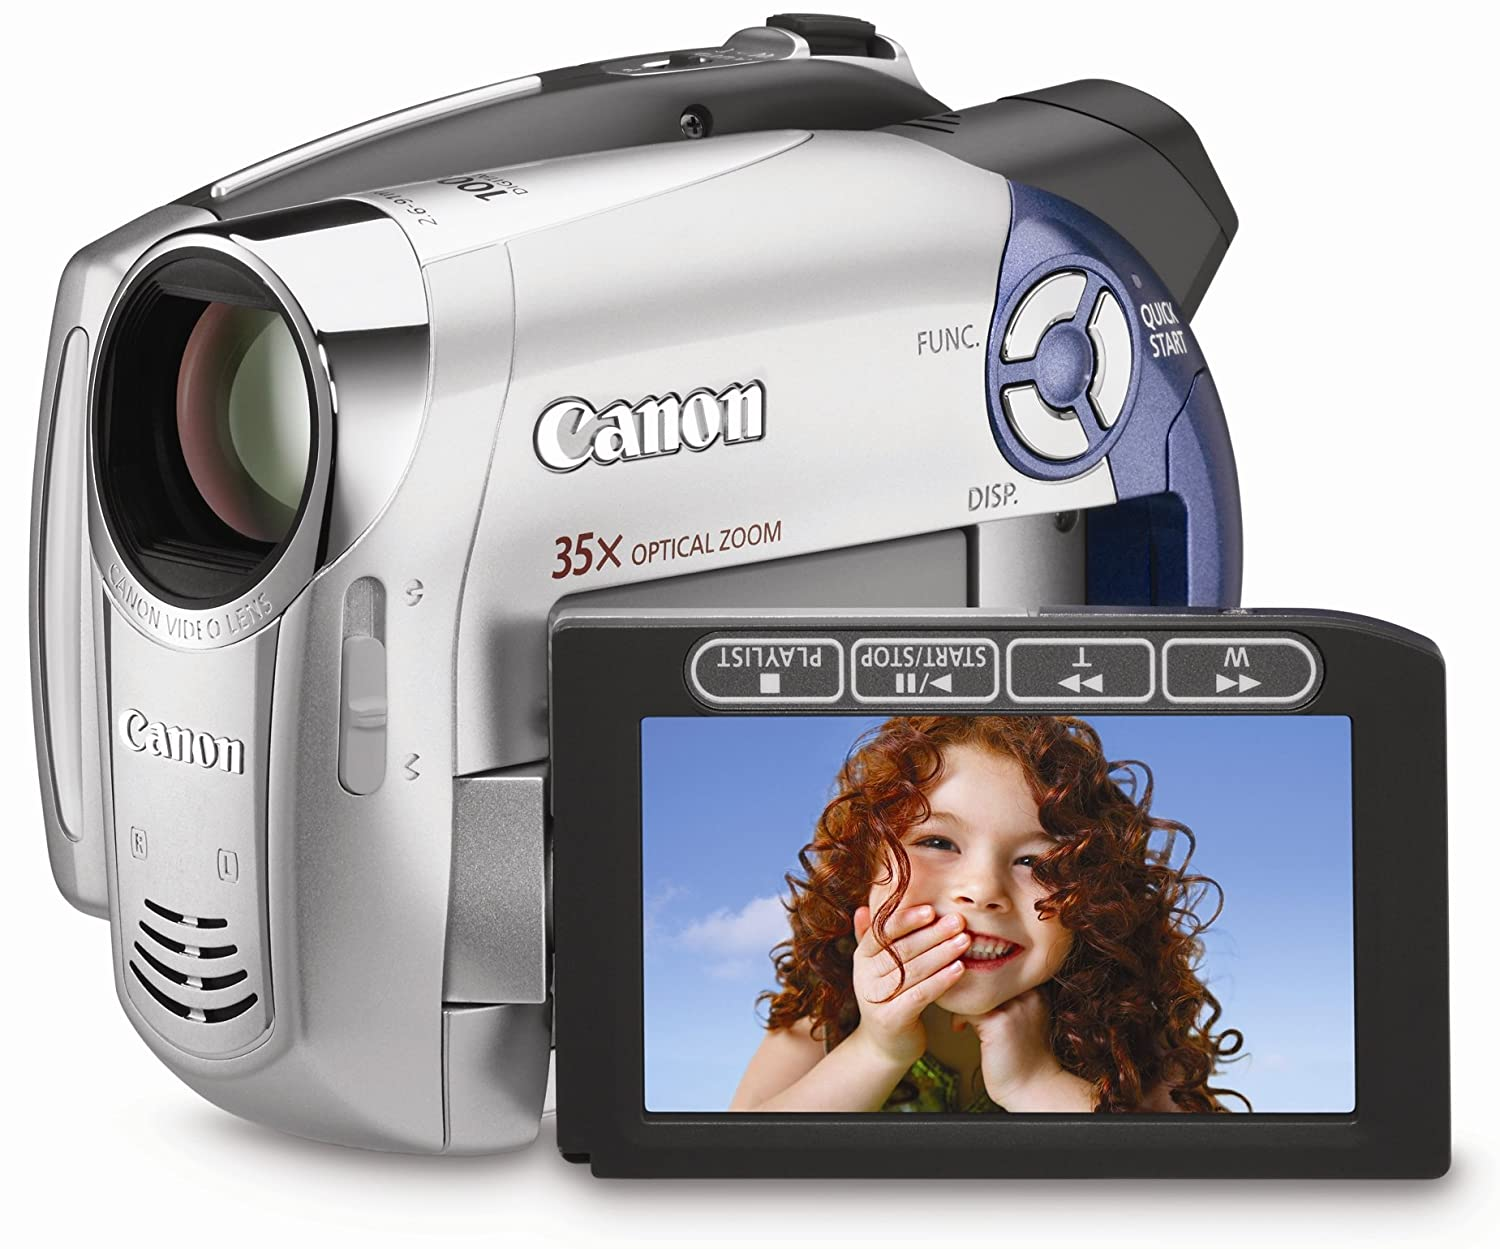 Amazon.com : Canon DC210 DVD Camcorder with 35x Optical Zoom (Discontinued  by Manufacturer) : Camera & Photo